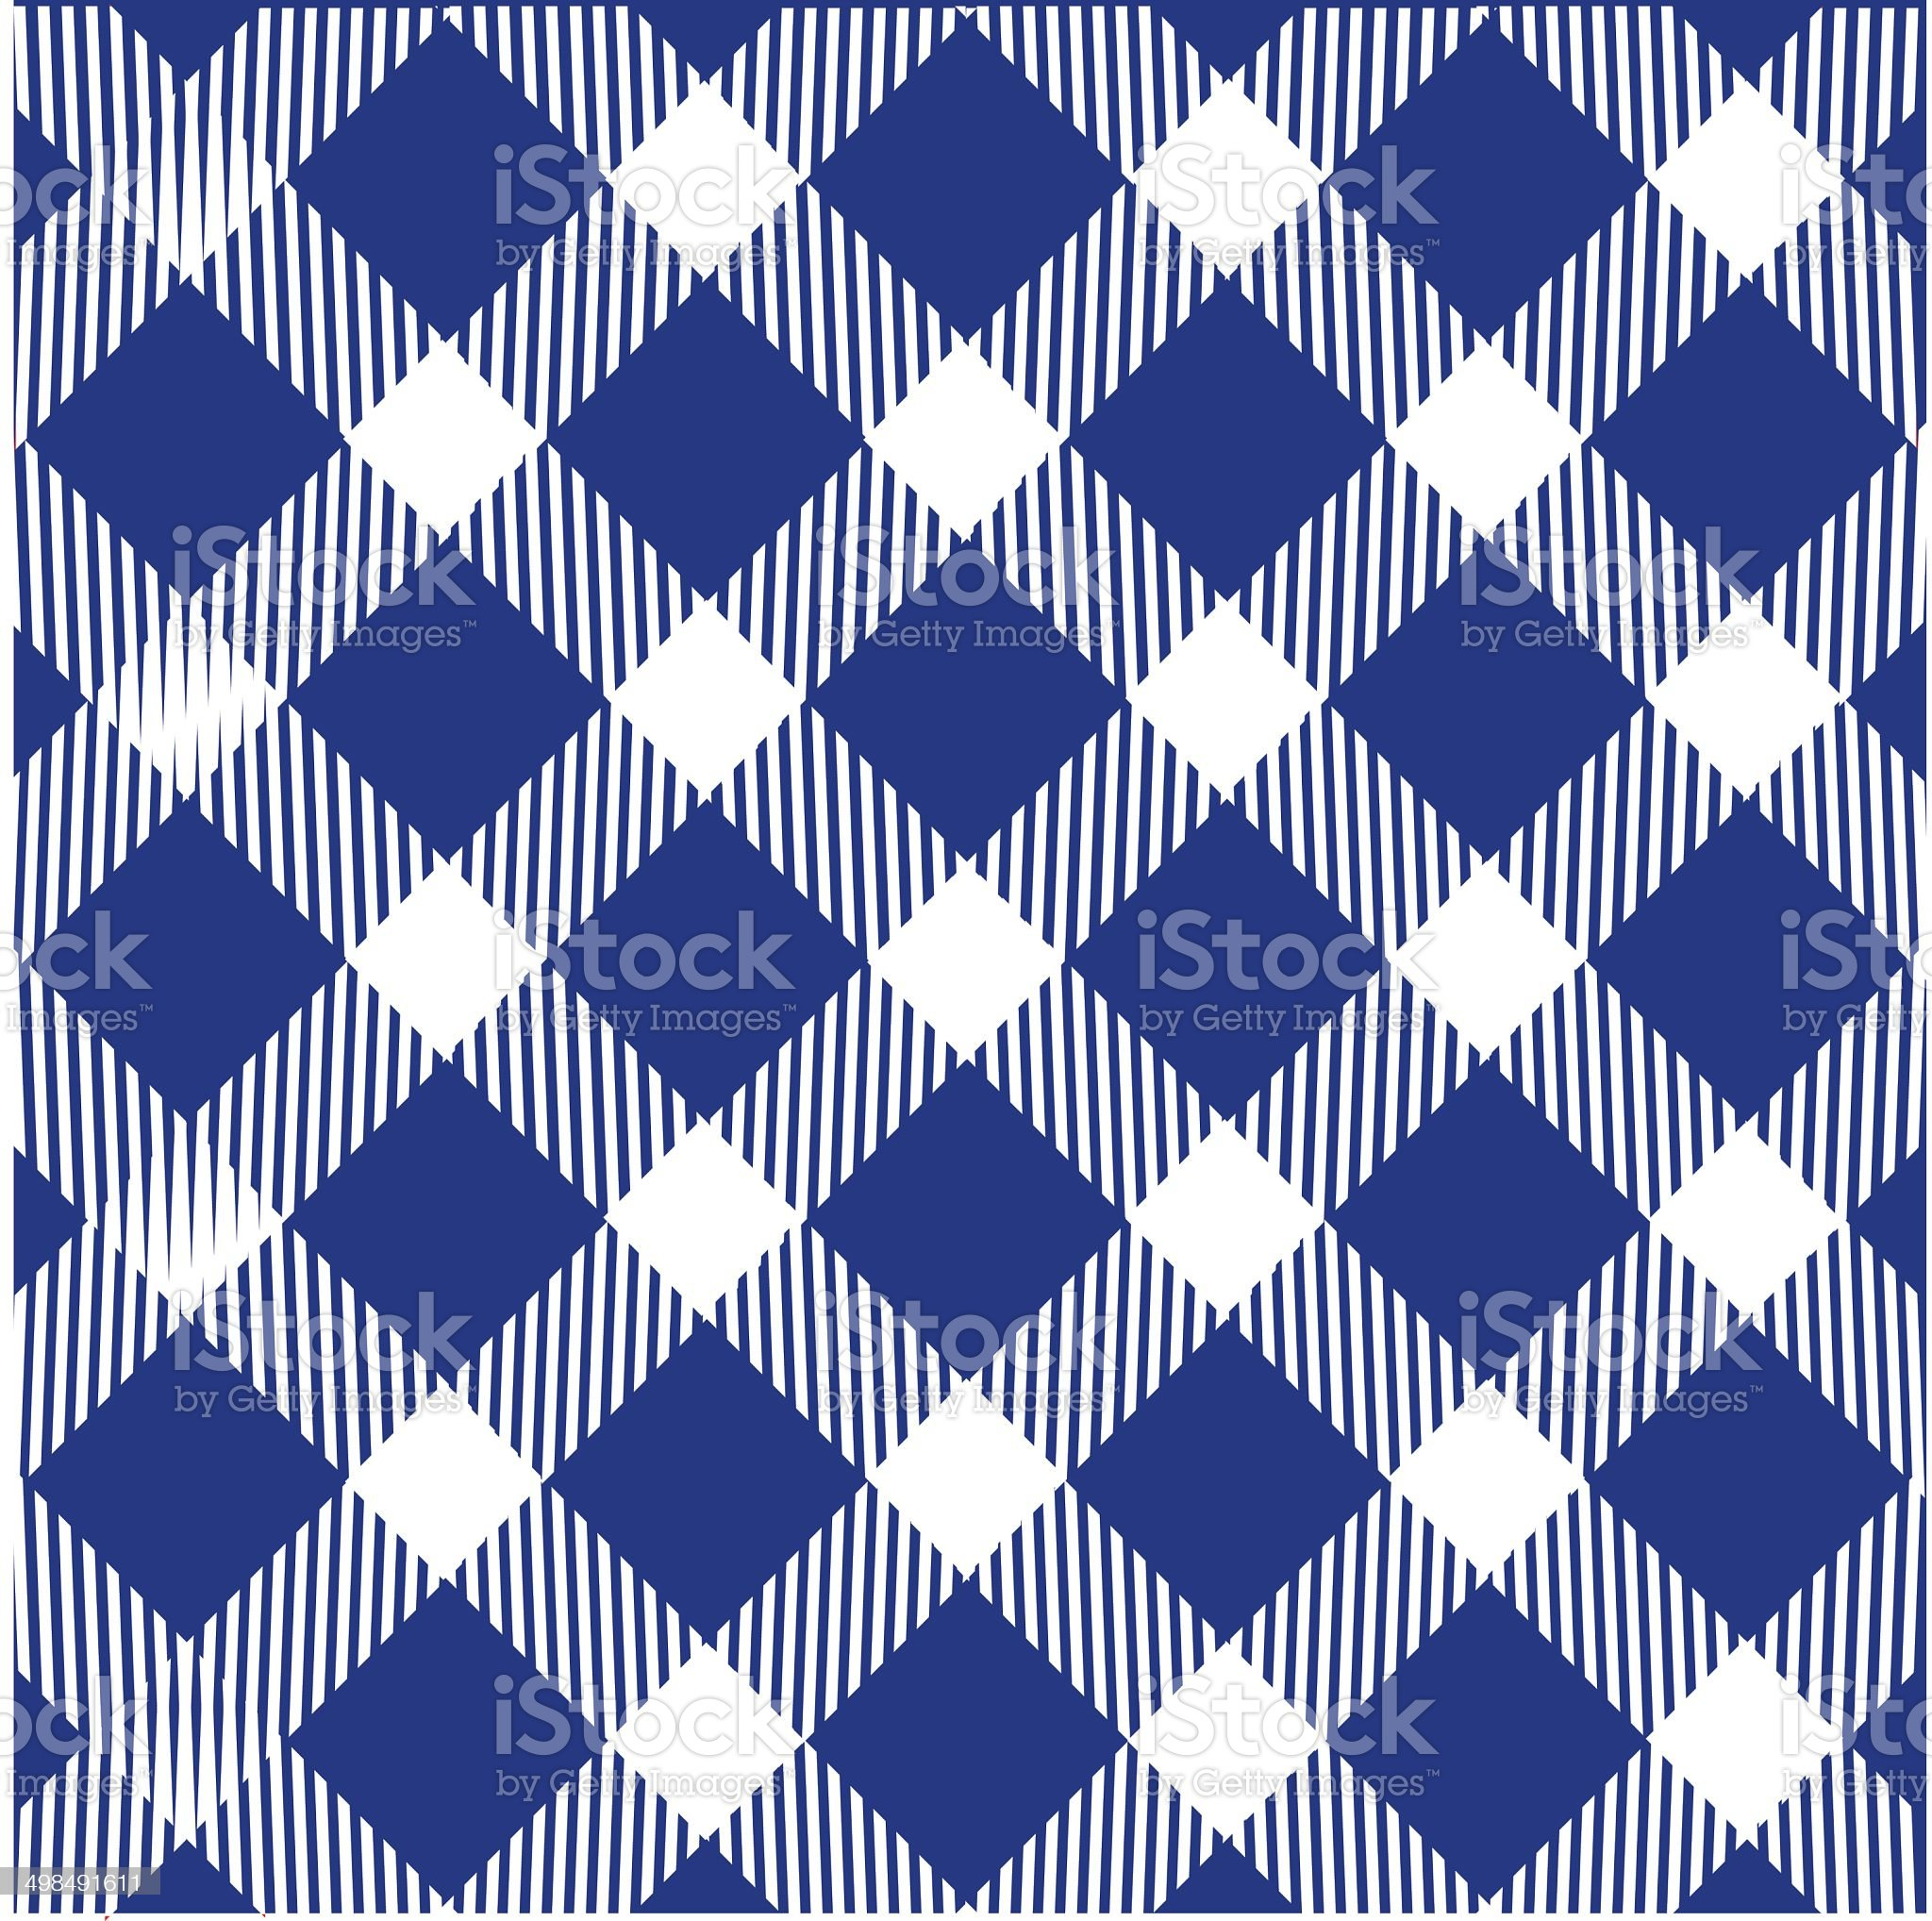 plaid pattern royalty-free stock vector art